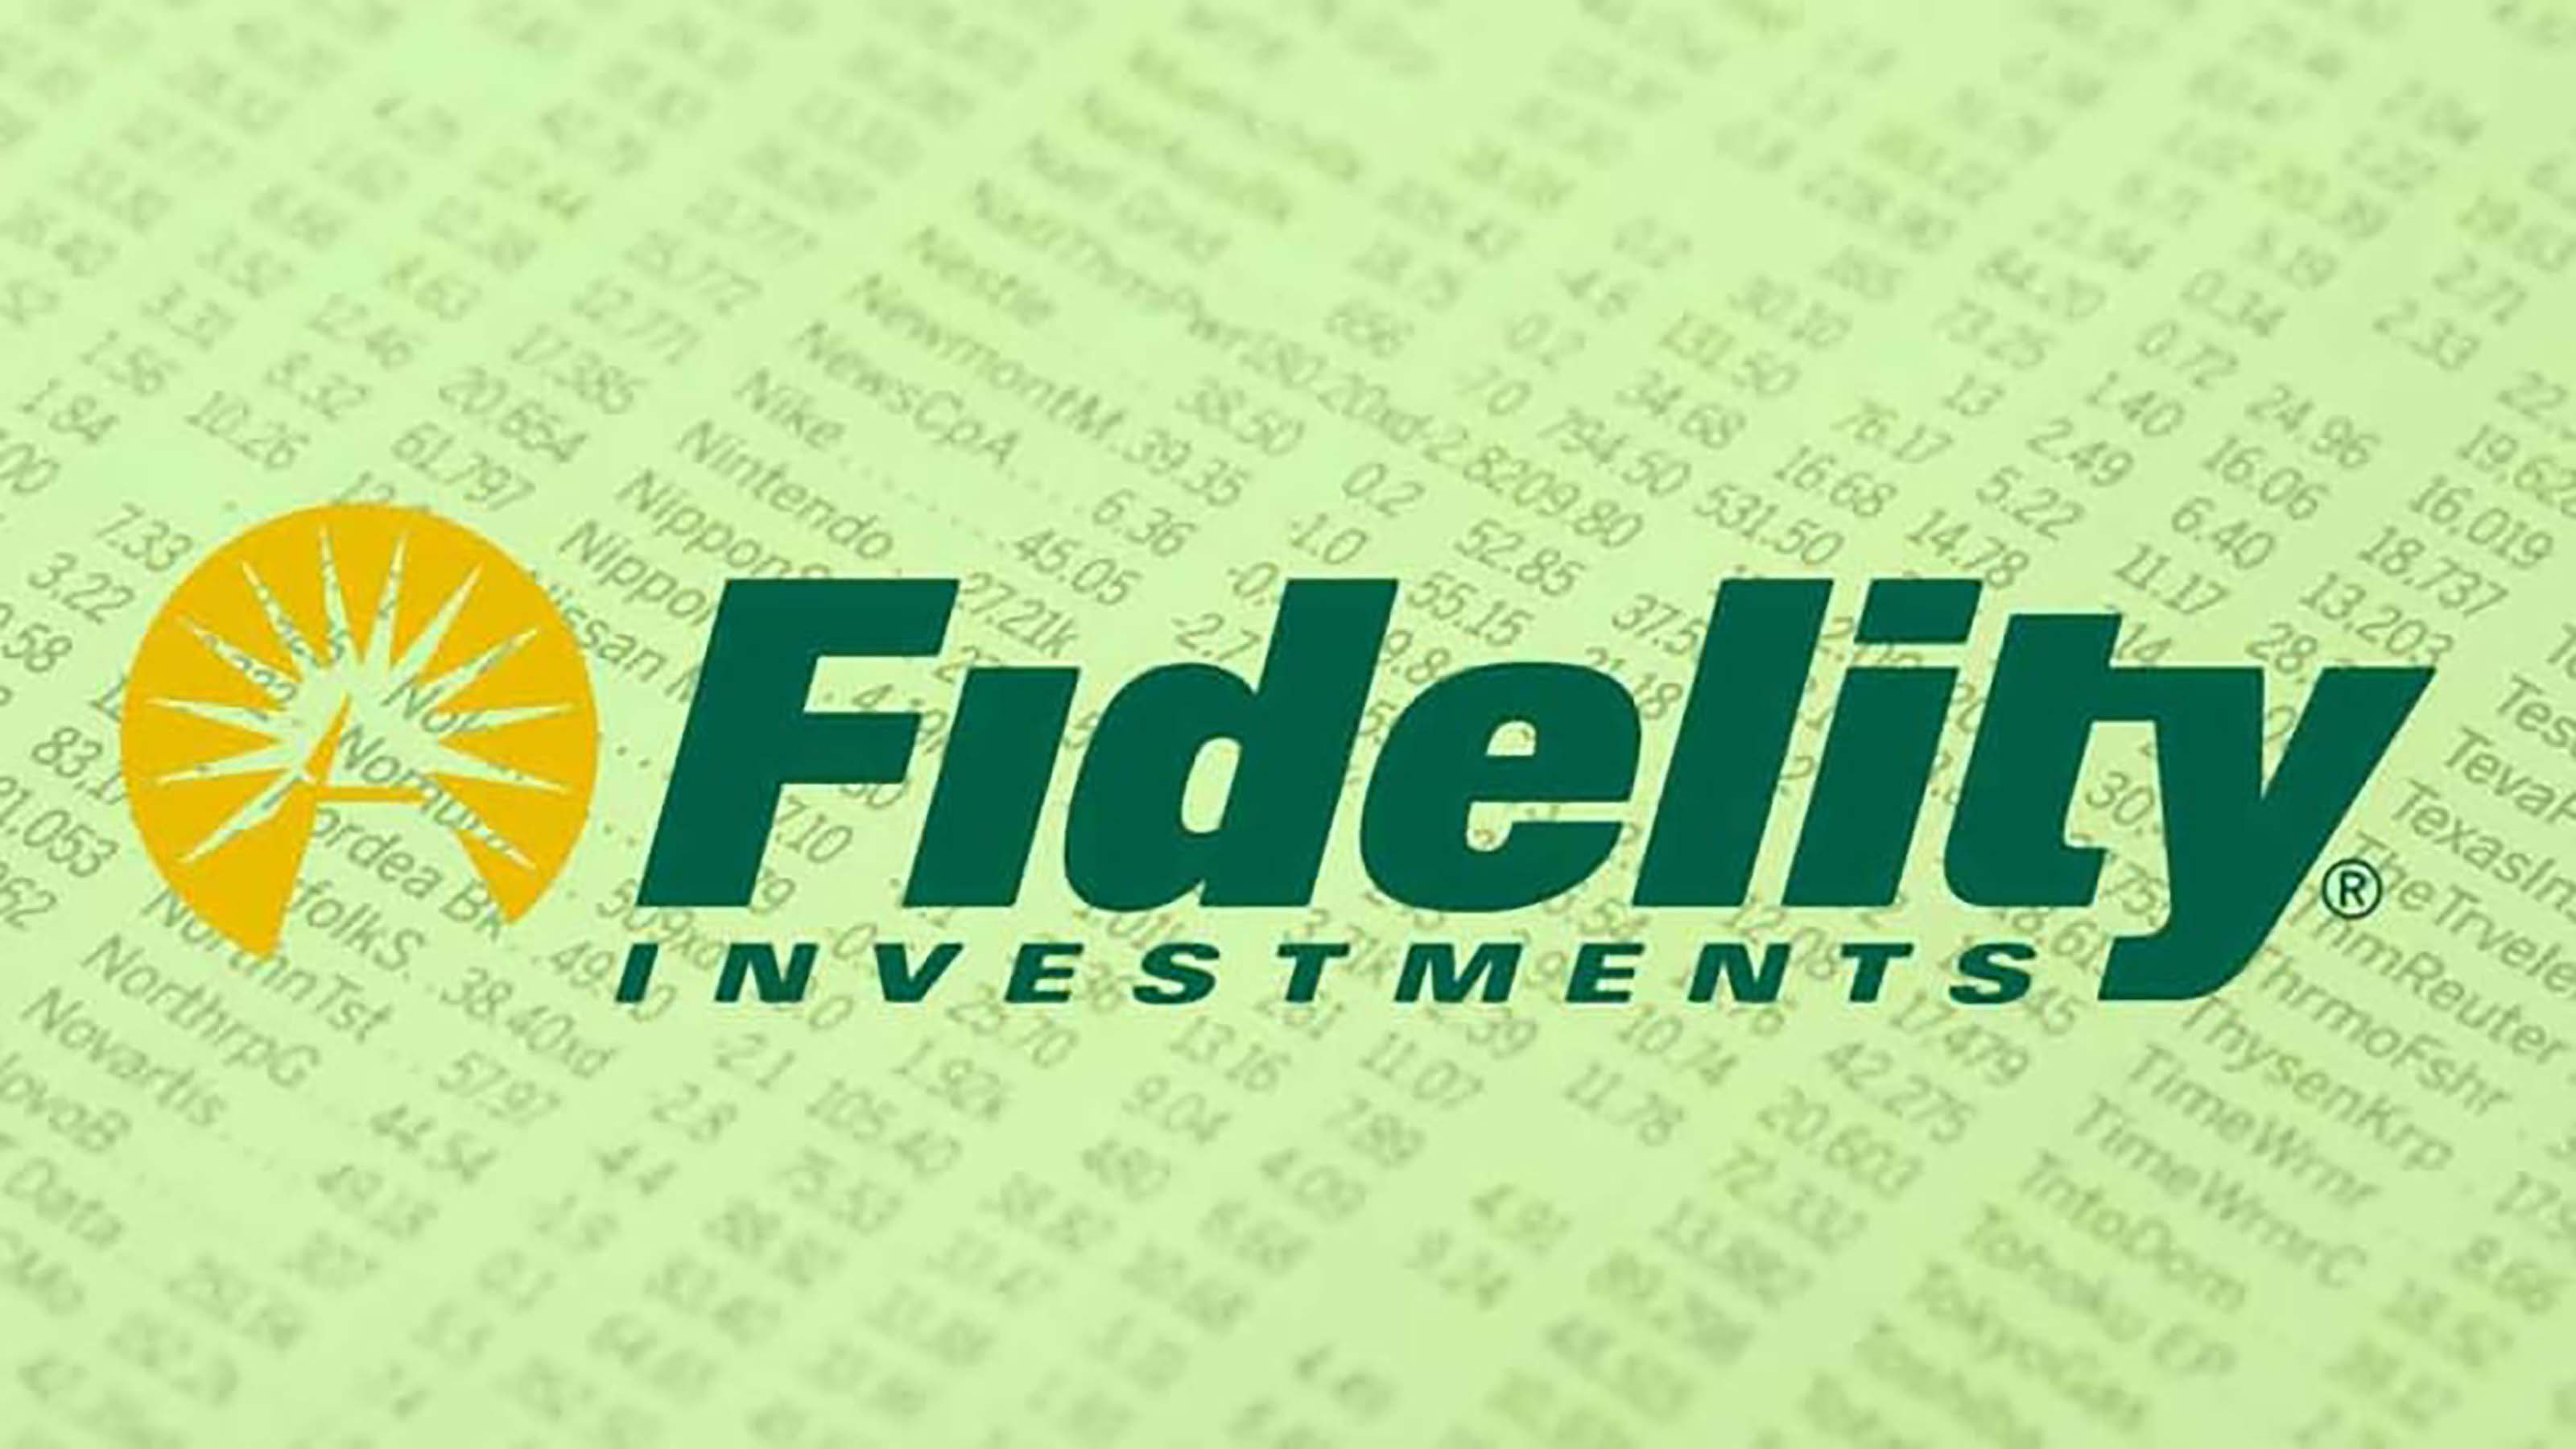 Best Fidelity Funds 2021 15 Best Fidelity Funds for the Next Bull Market | Kiplinger